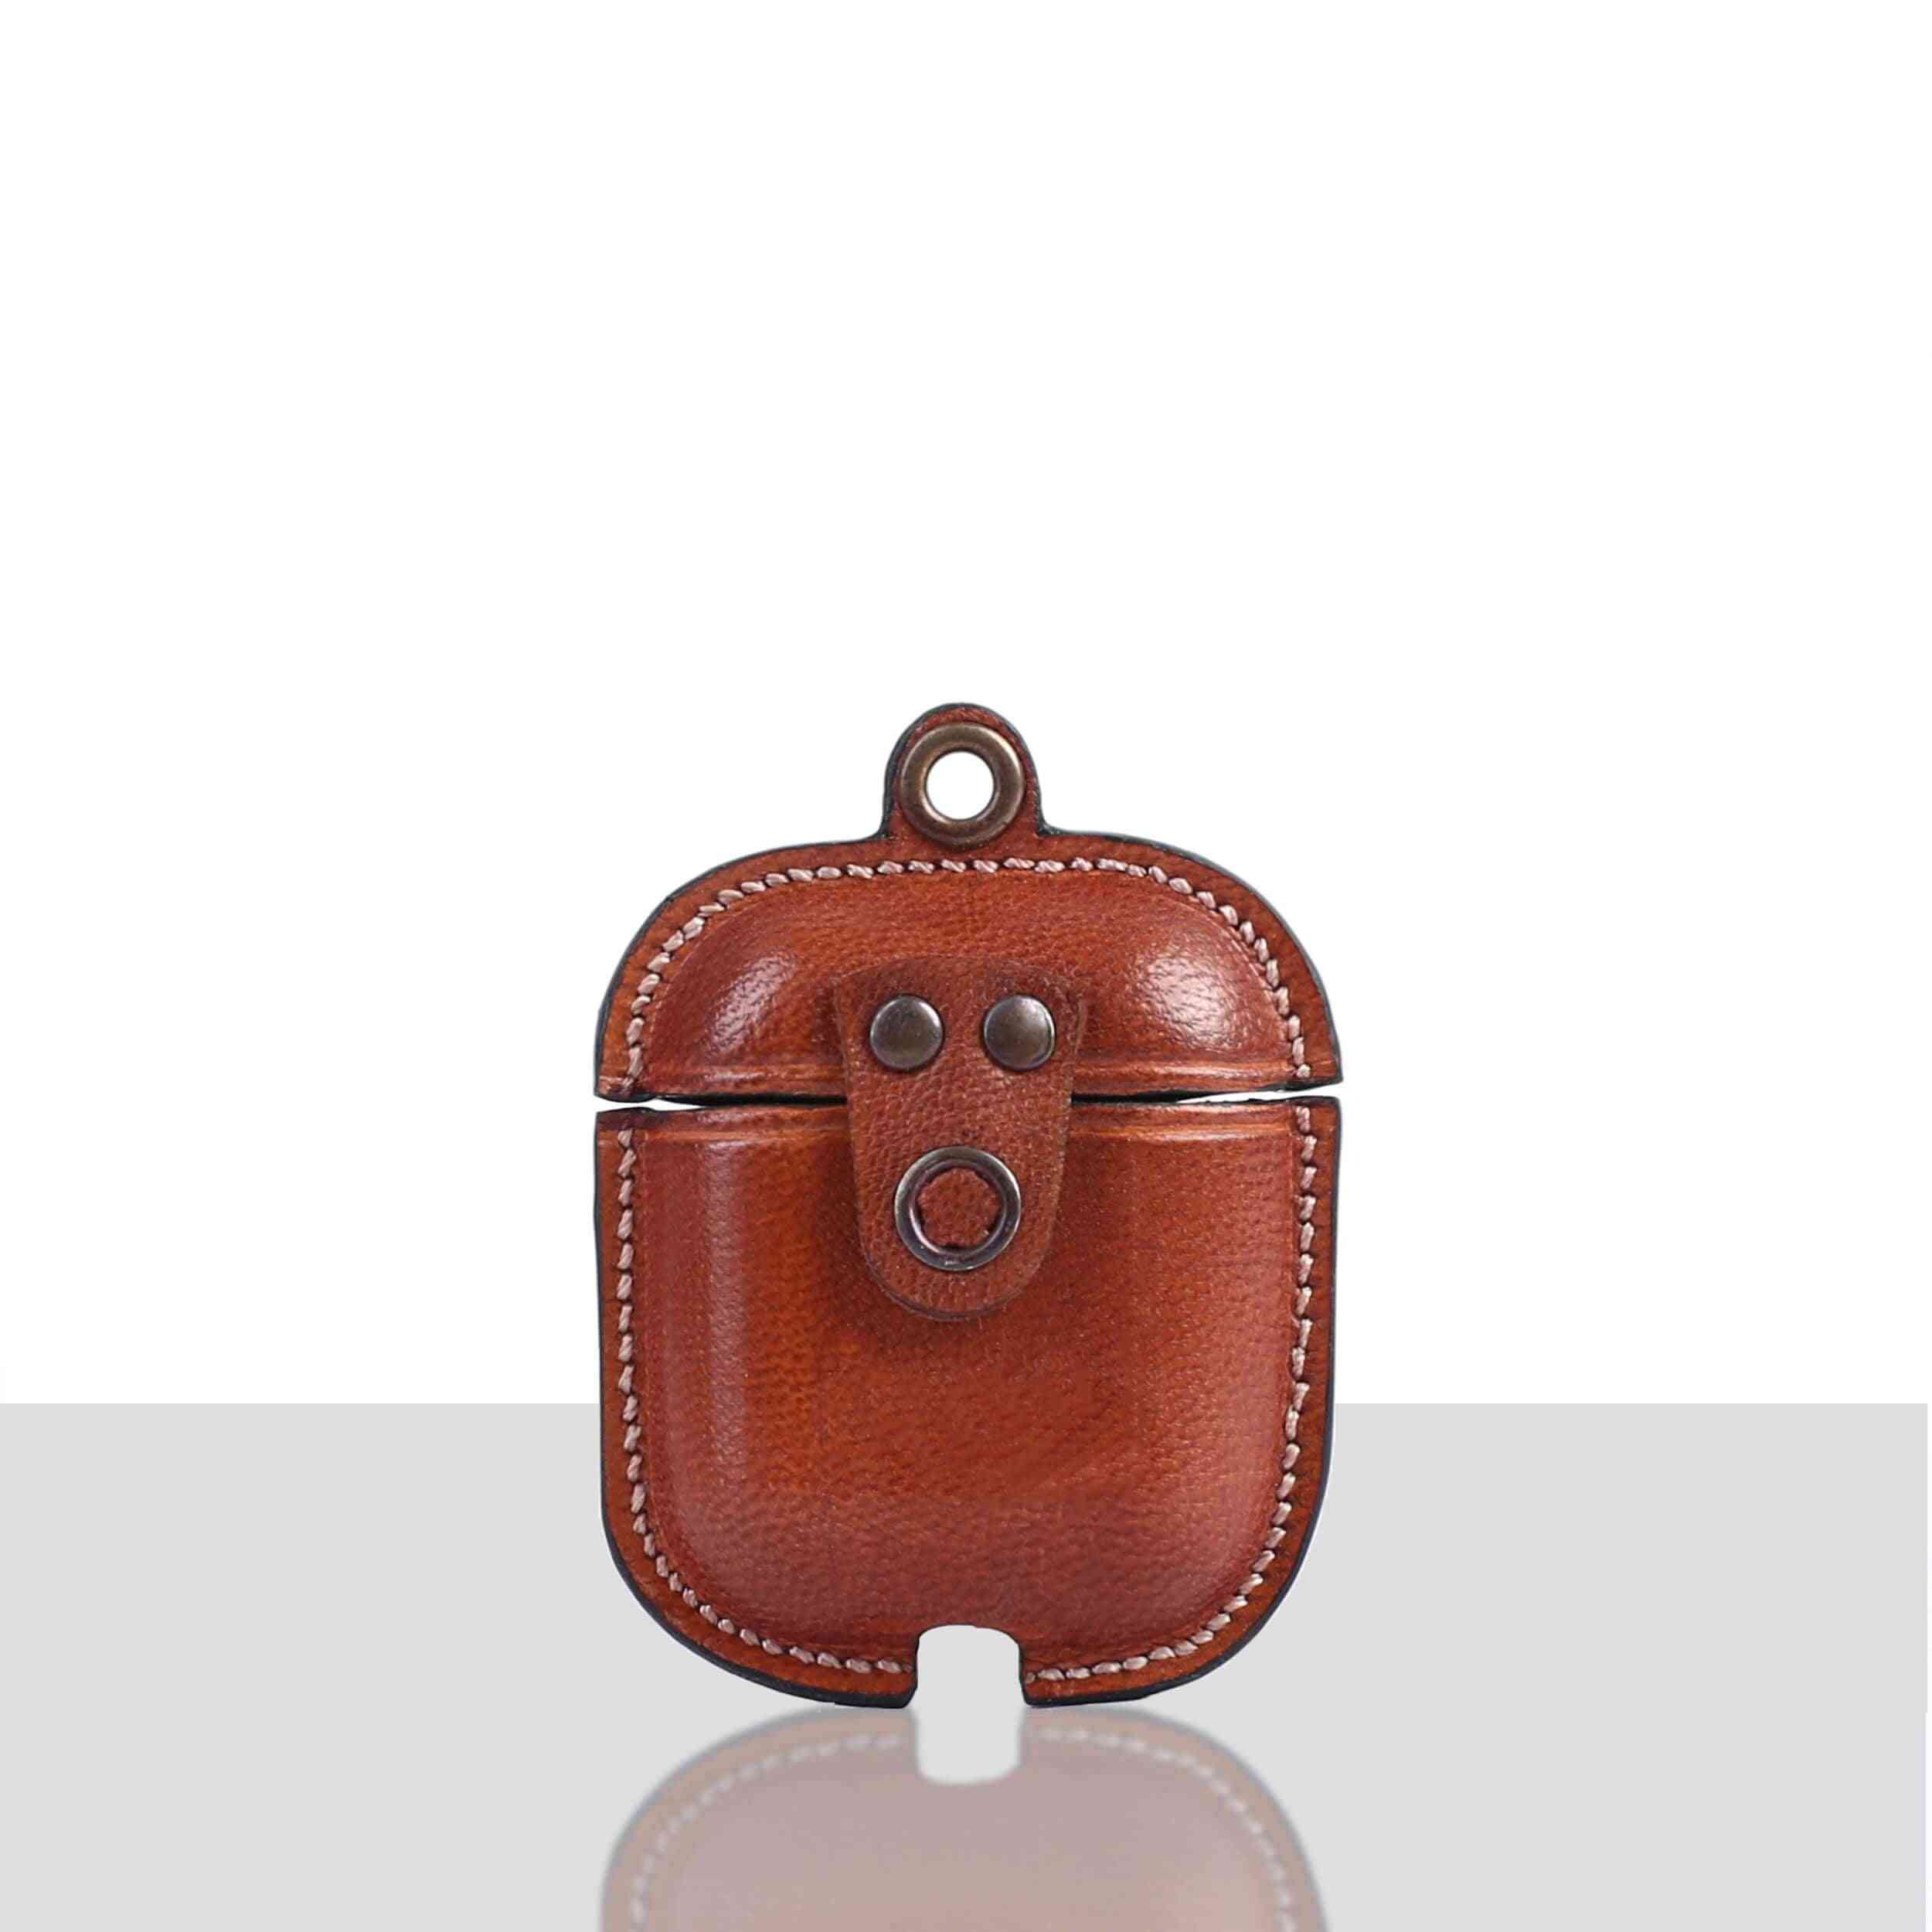 Veg Tanned Leather Luxury Protective Cover Case For Apple